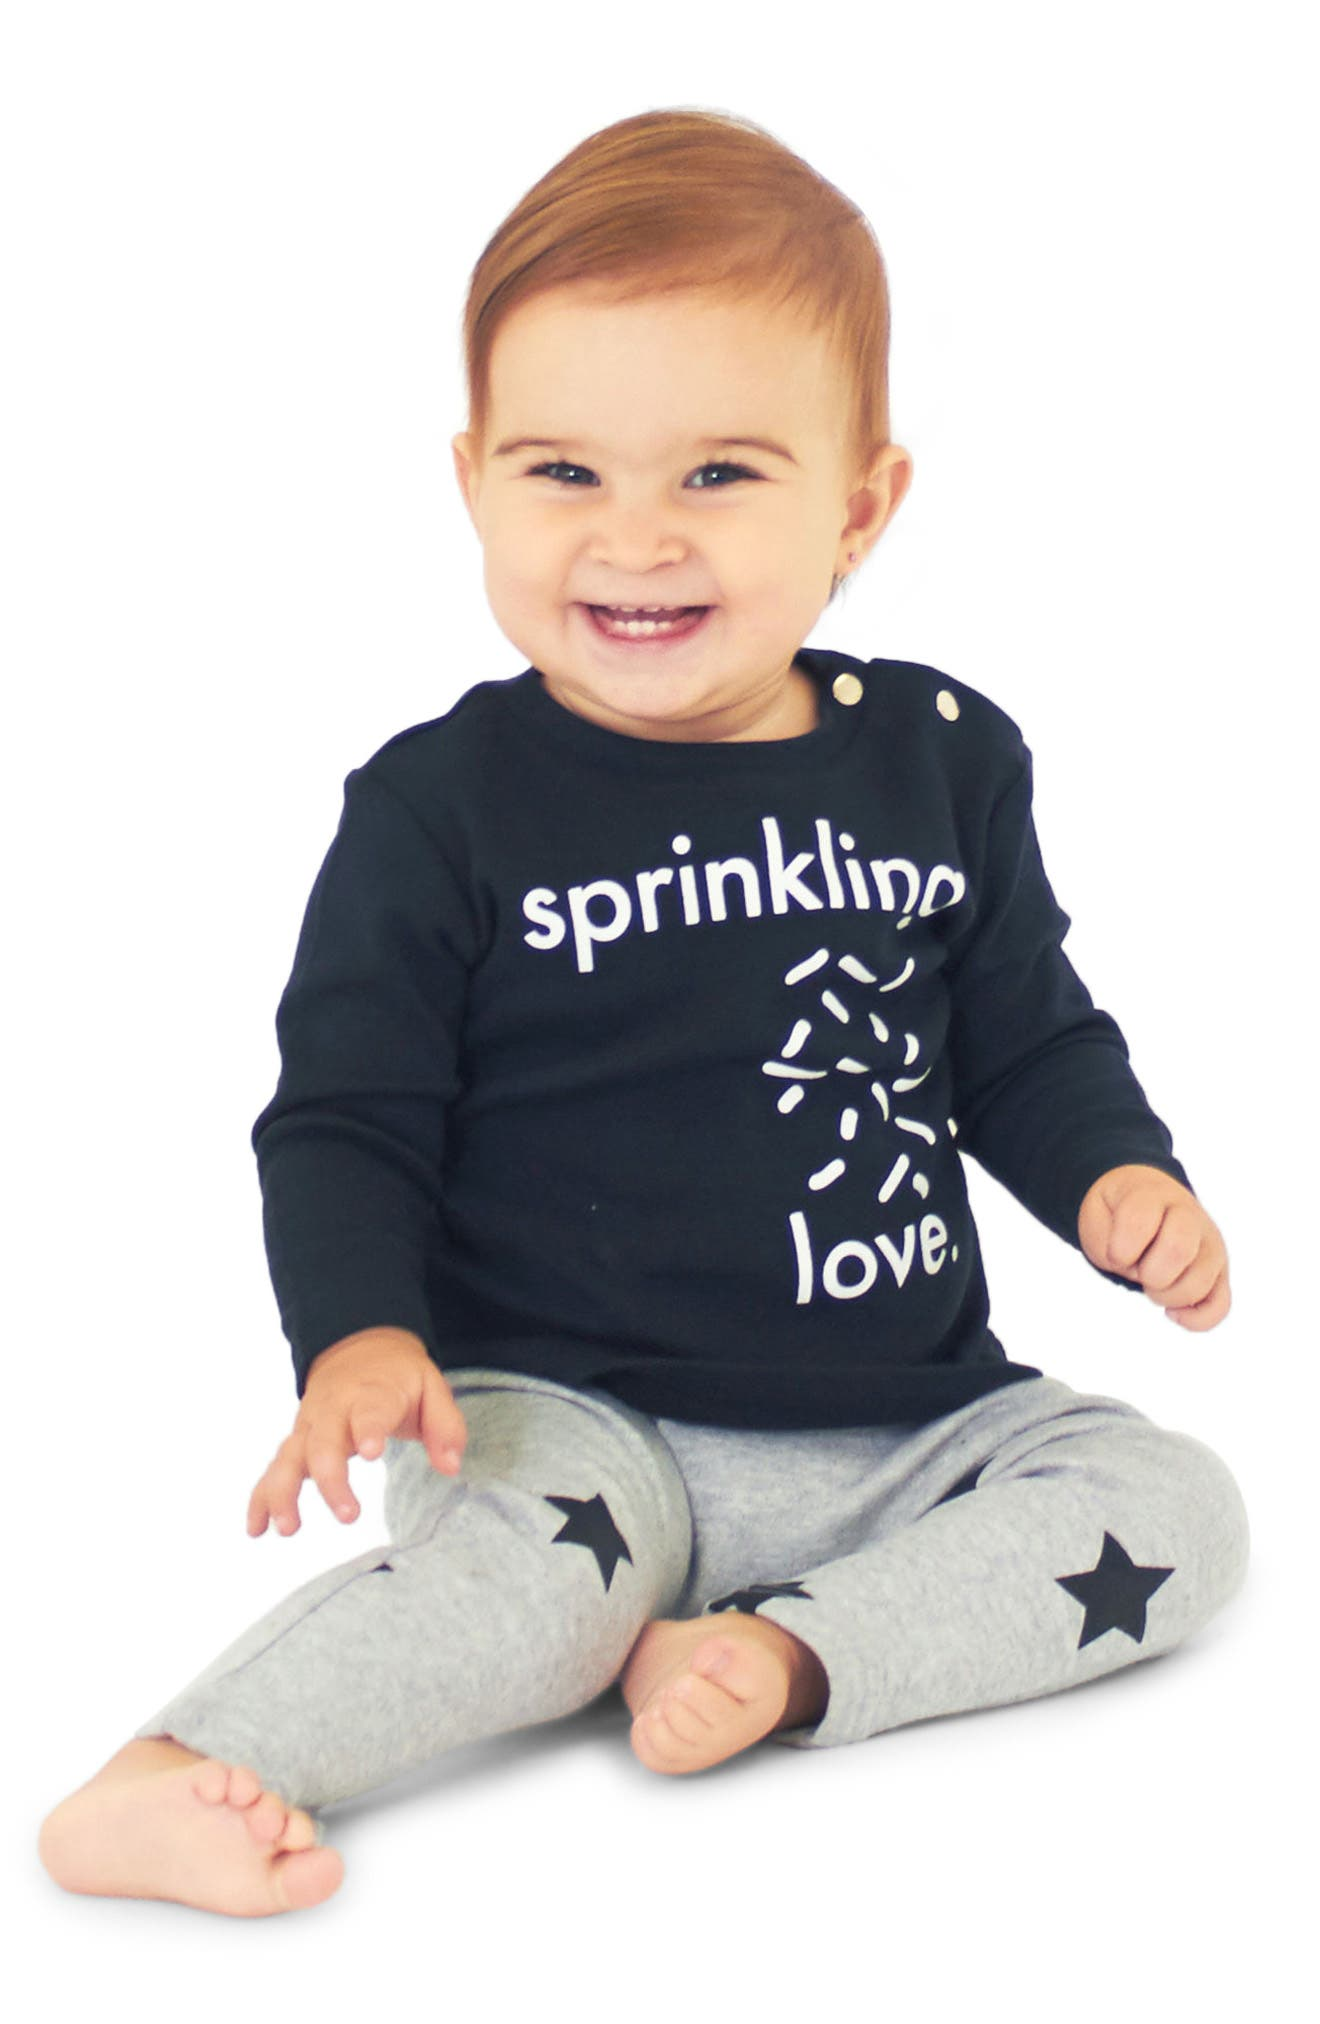 Sprinkling Love Graphic Tee & Leggings Set,                             Main thumbnail 1, color,